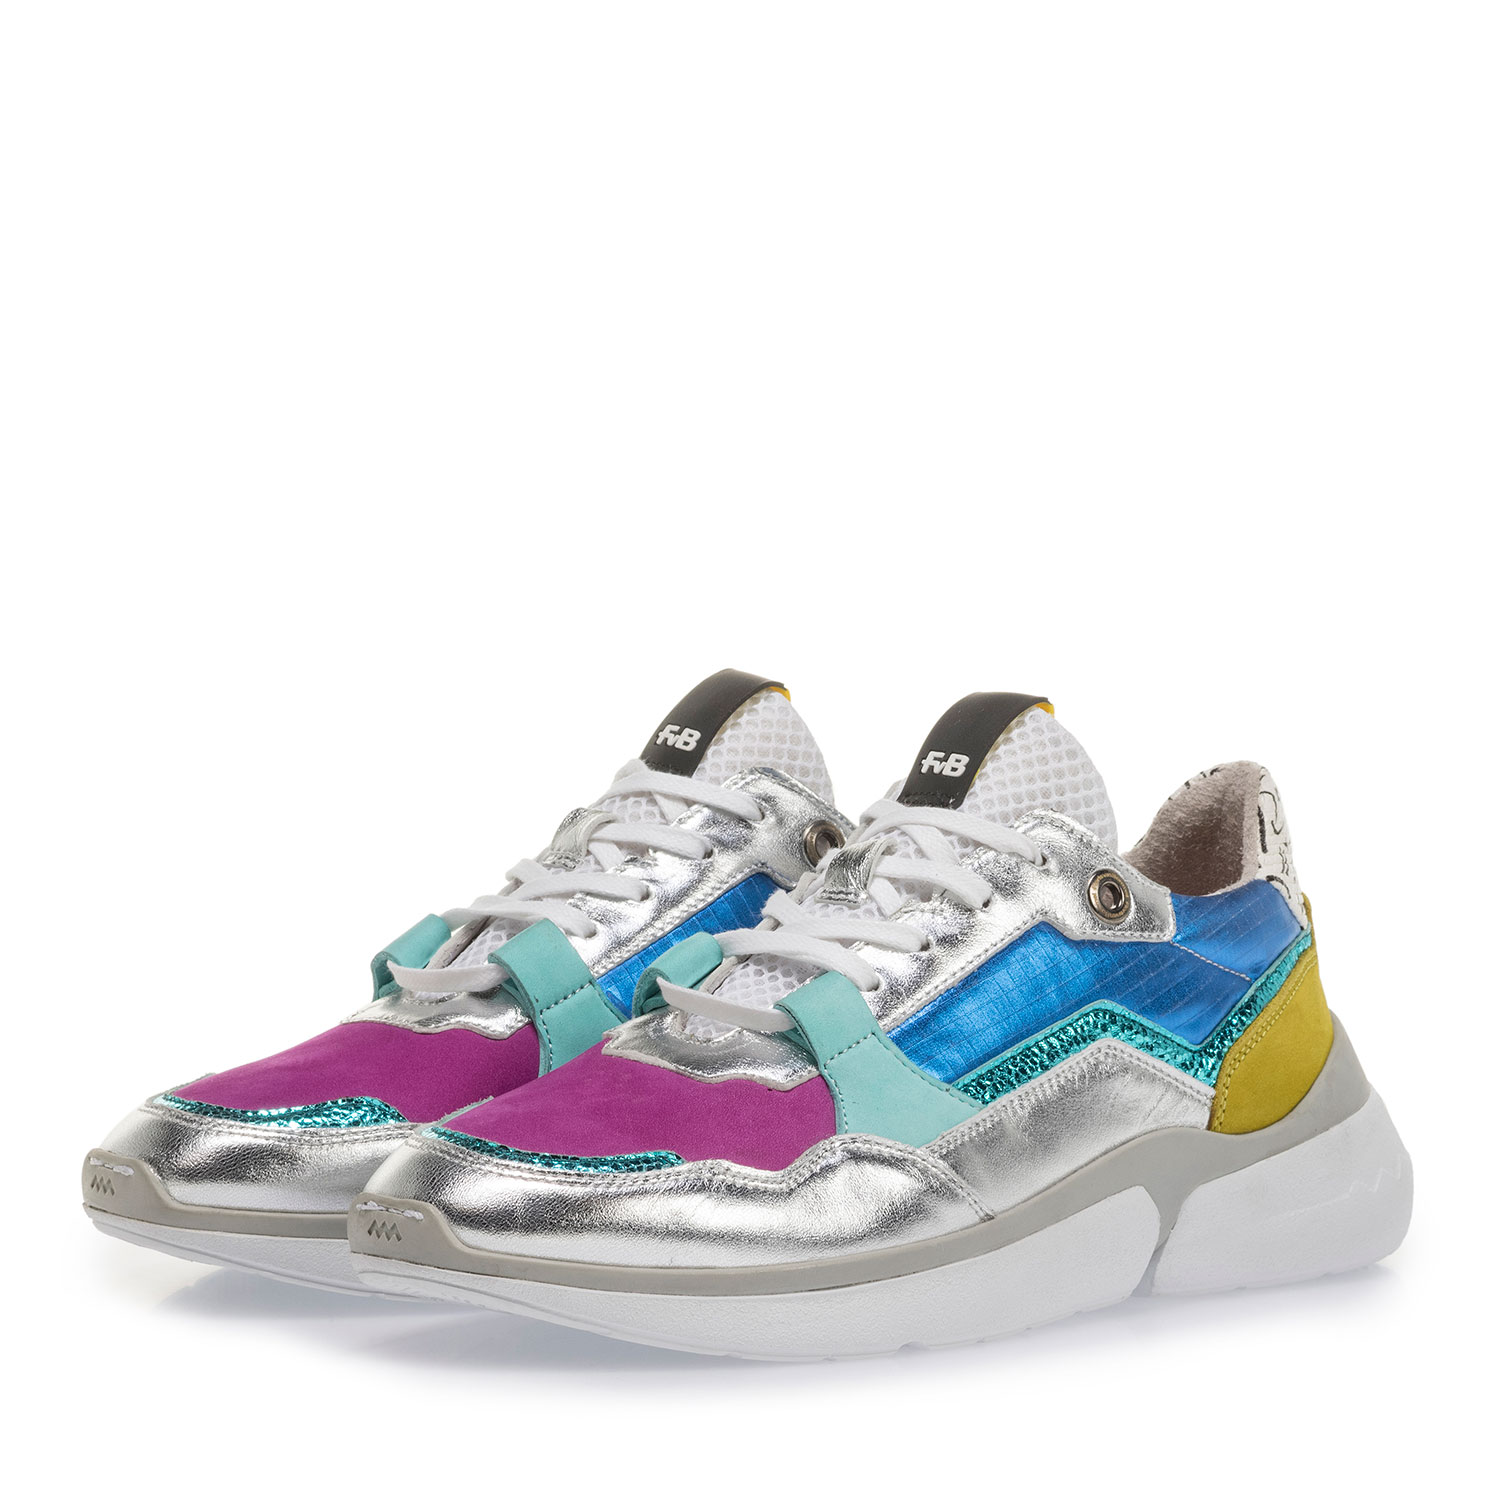 85291/20 - Multi-color leren sneaker